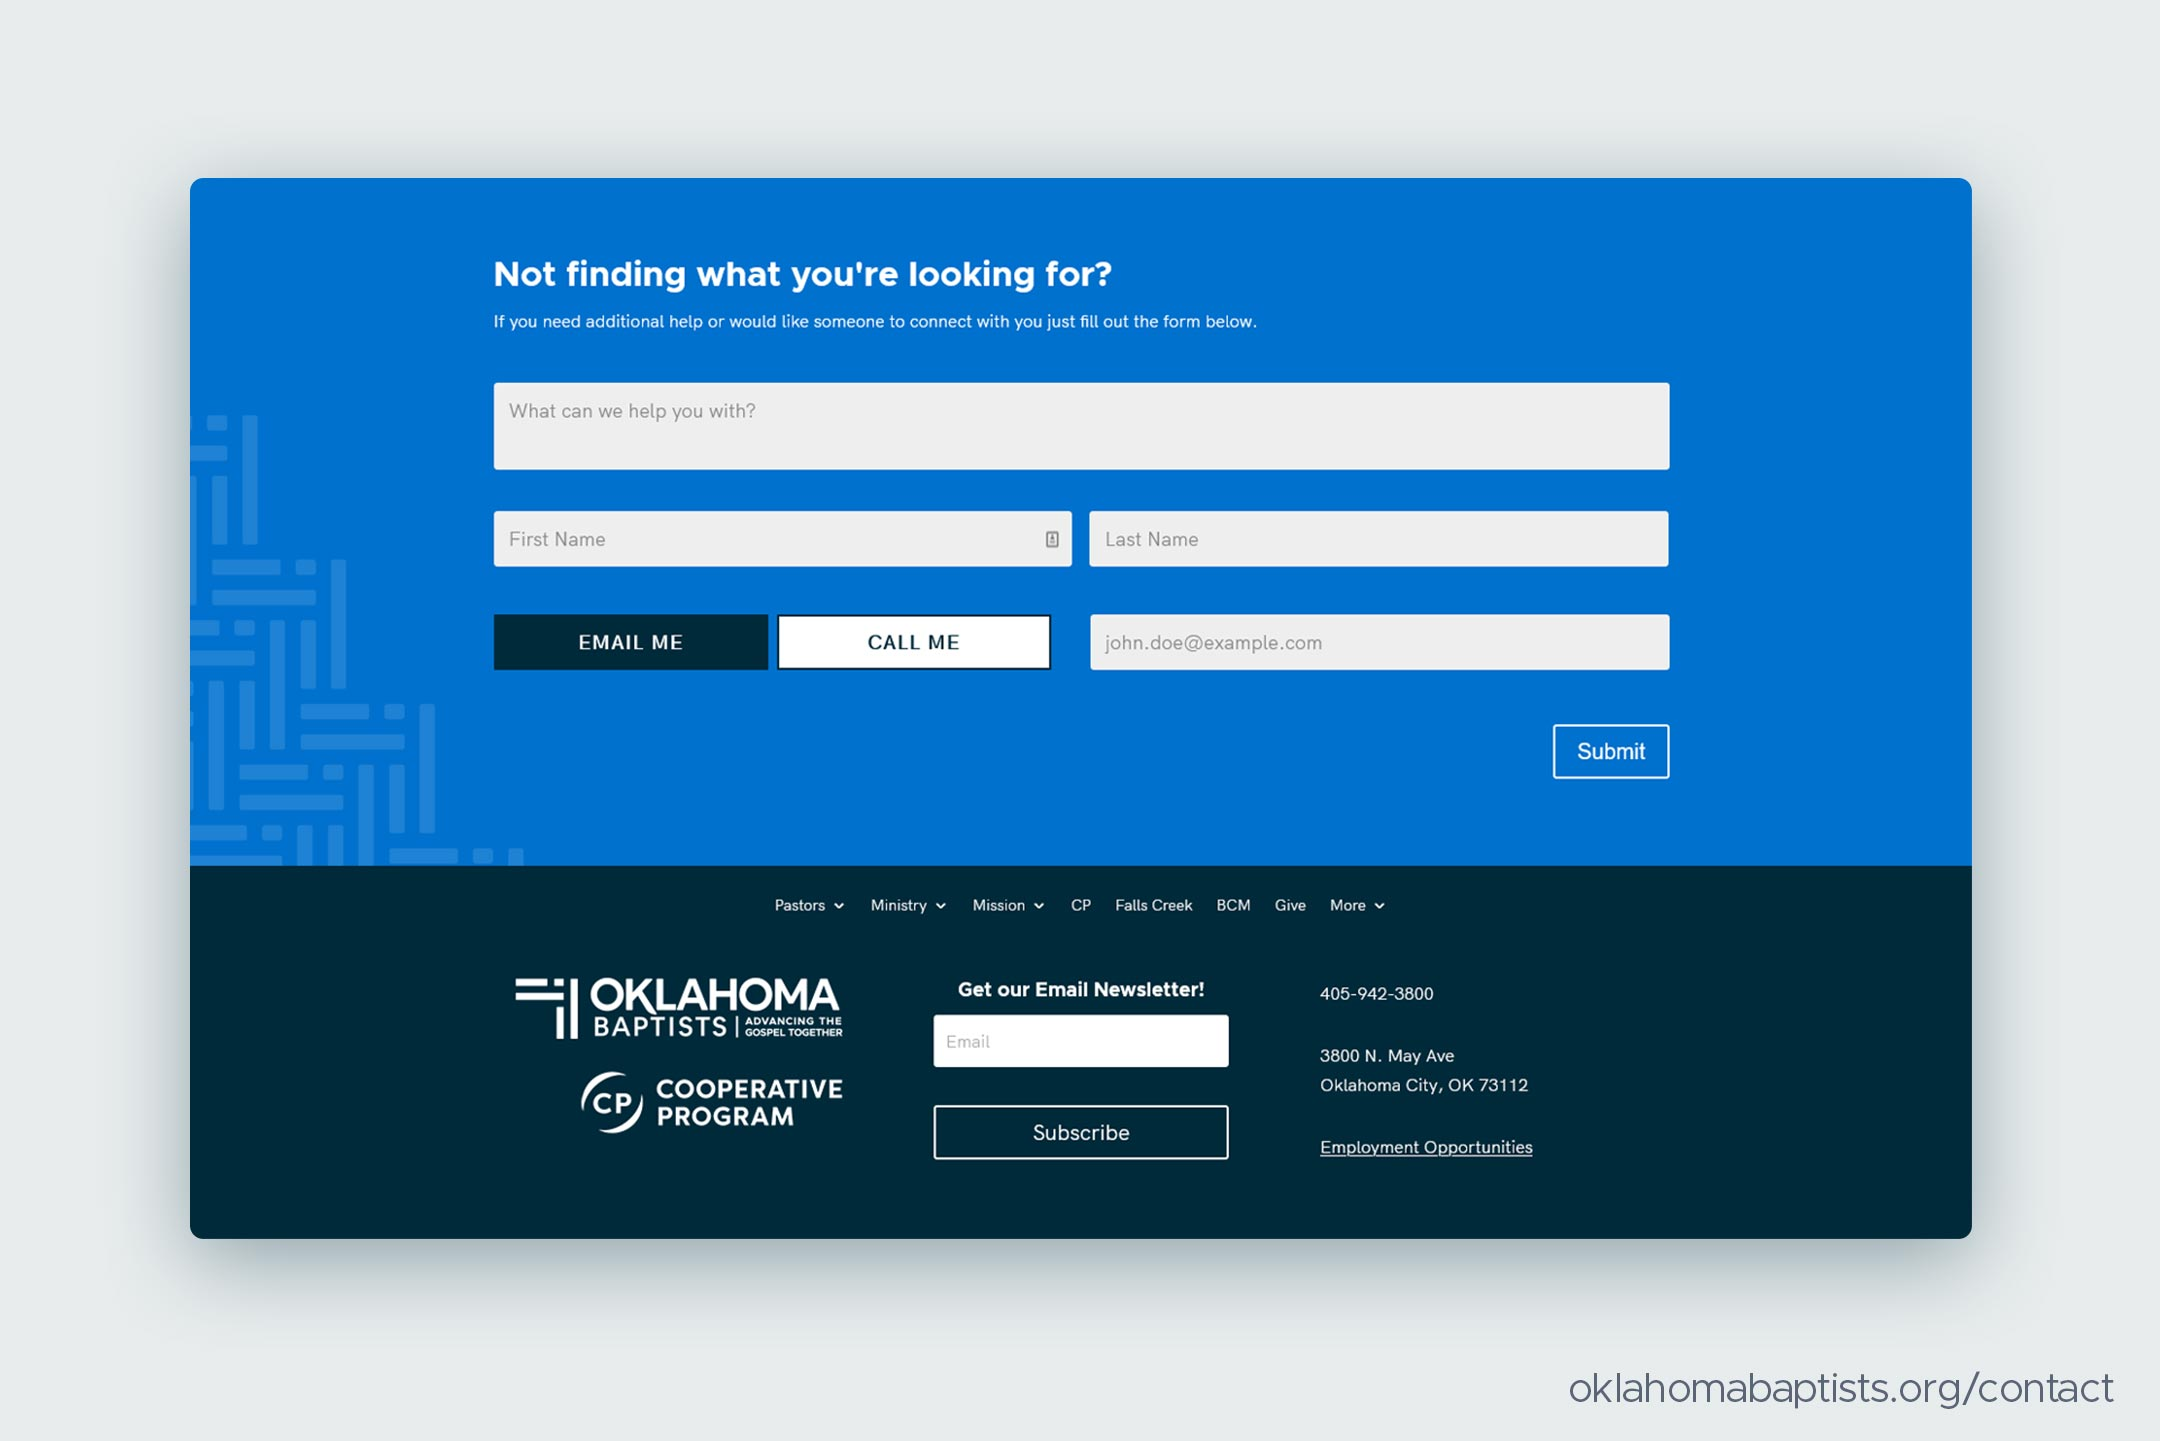 The universal contact form in the footer of every page on OklahomaBaptists.org